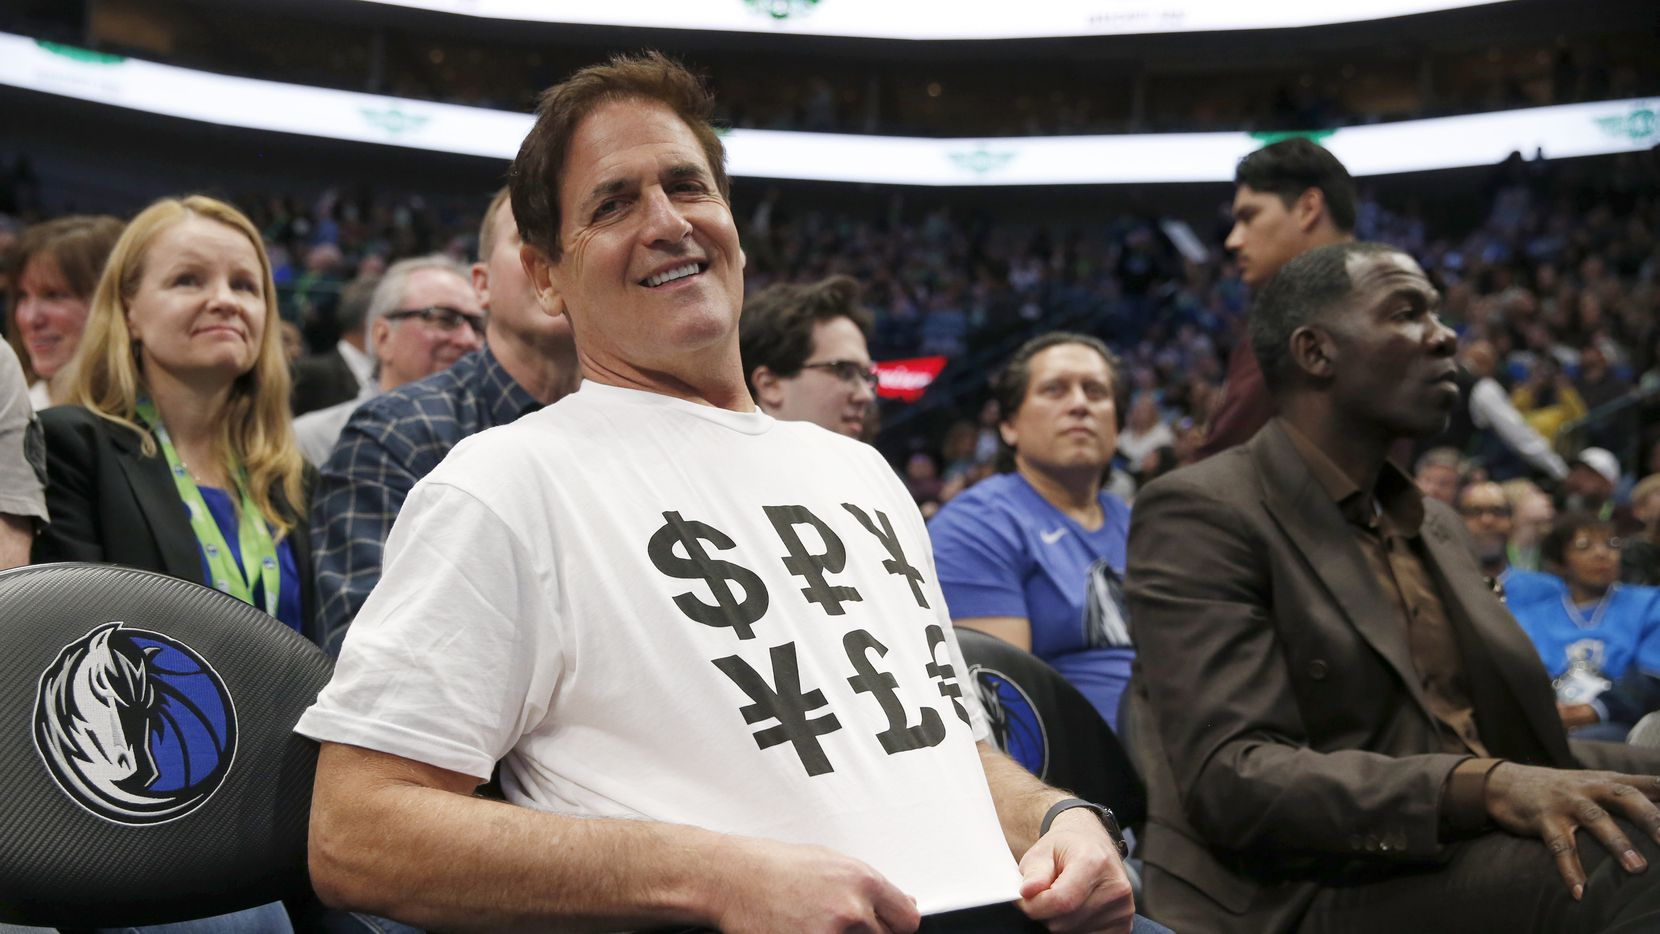 Dallas Mavericks owner Mark Cuban sports a shirt with money signs during the second half of play at American Airlines Center in Dallas on Friday, March 6, 2020.